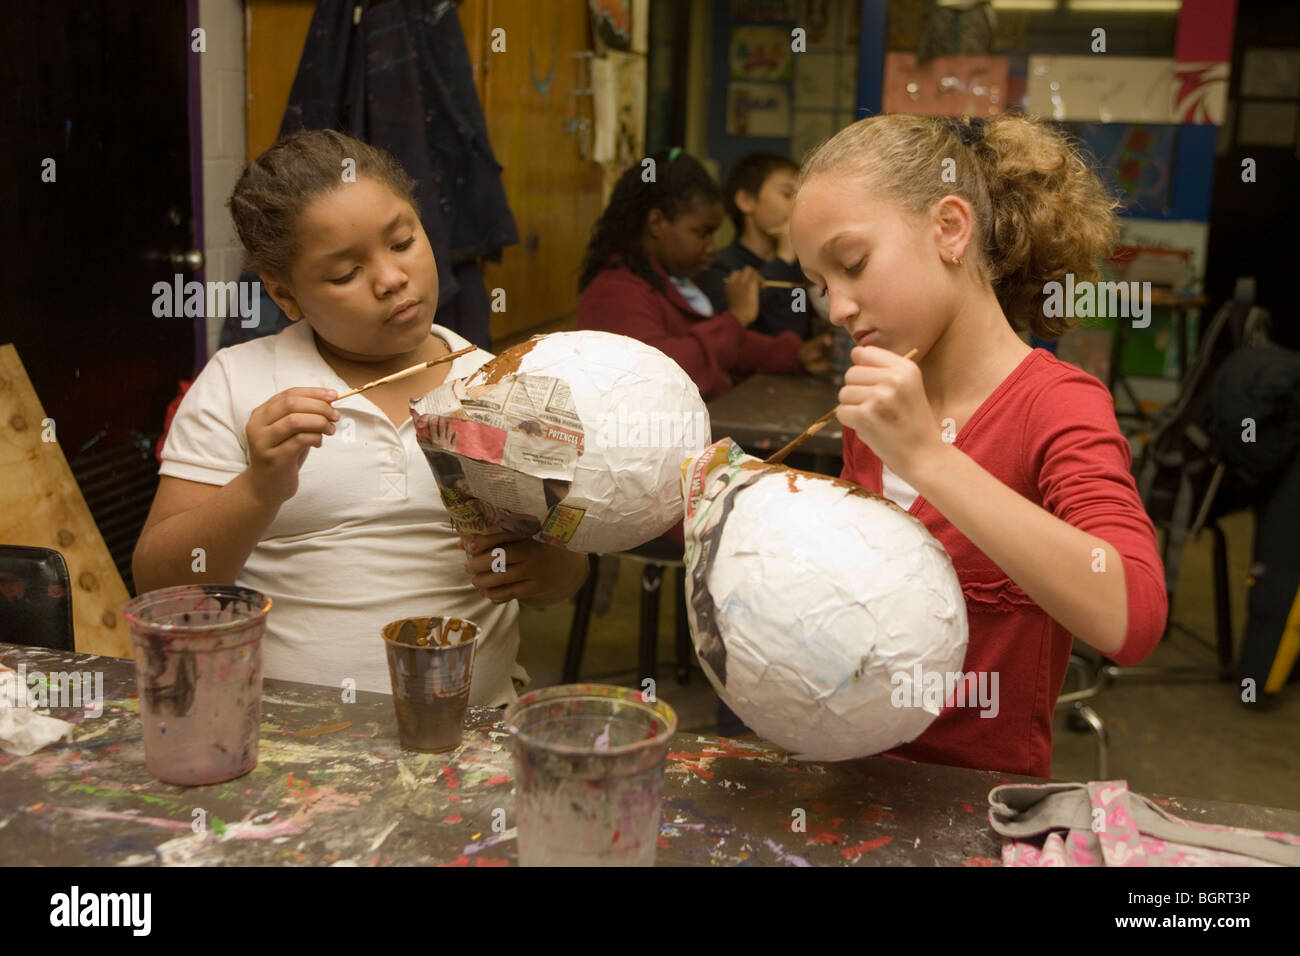 manhattan project stock photos manhattan project stock images girls work on paper mache art project at an after school community center in manhattan